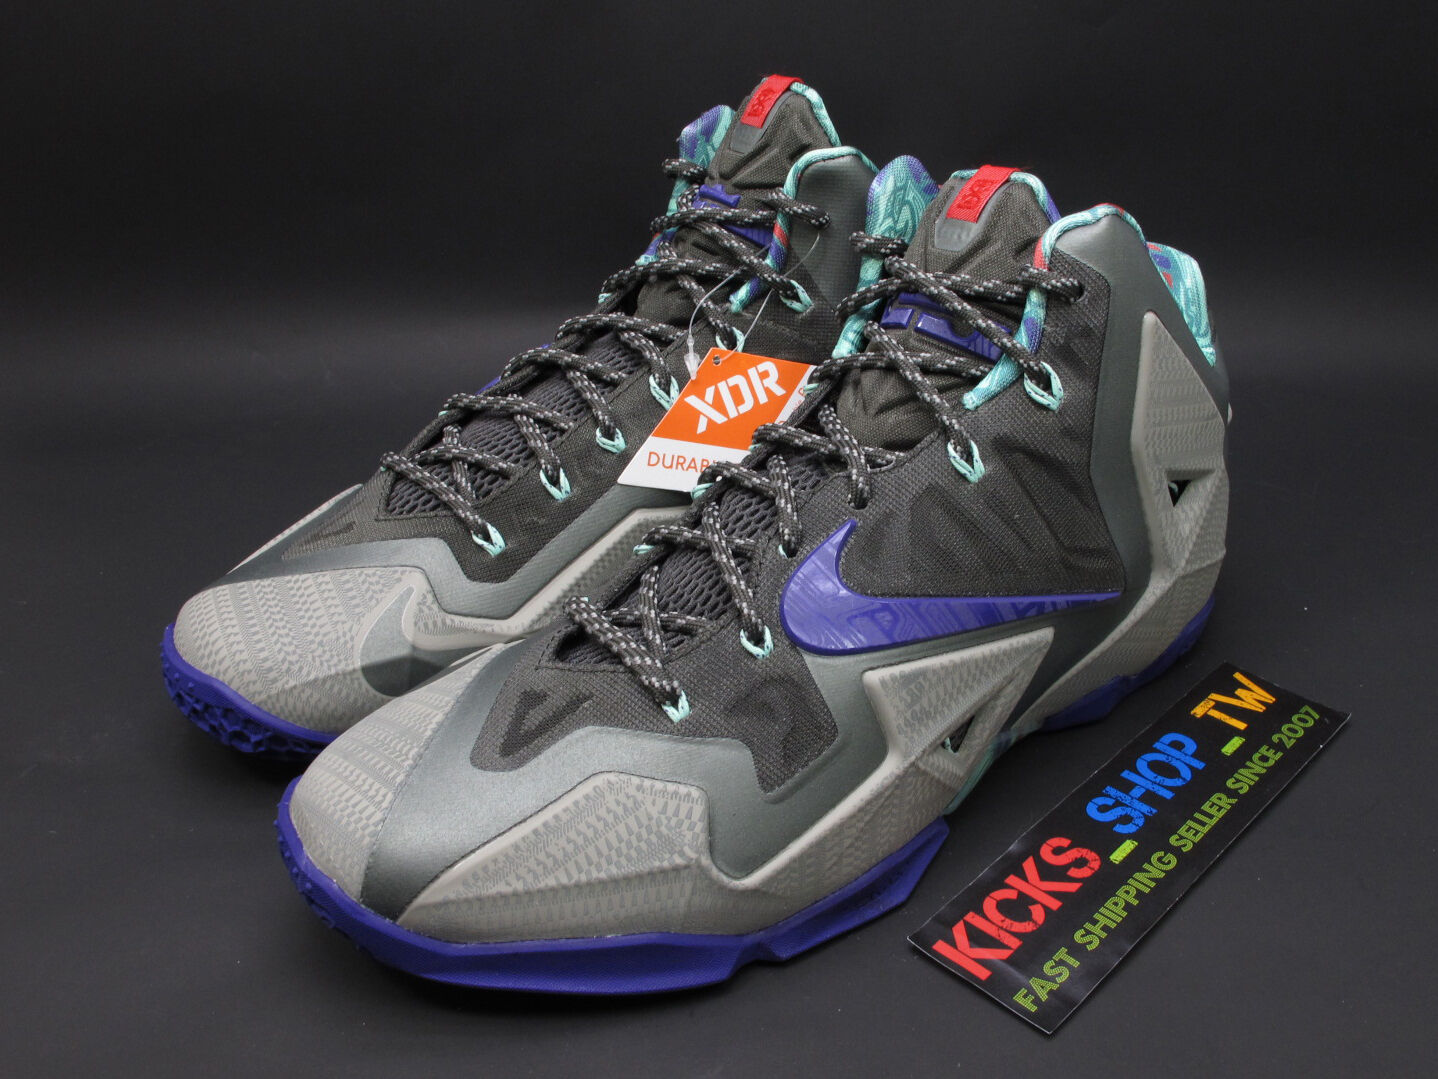 DS 11 2013 NIKE LEBRON XI 11 DS XDR TERRACOTTA WARRIOR GRAY 626374-005 CHINA JAMES 8c5672